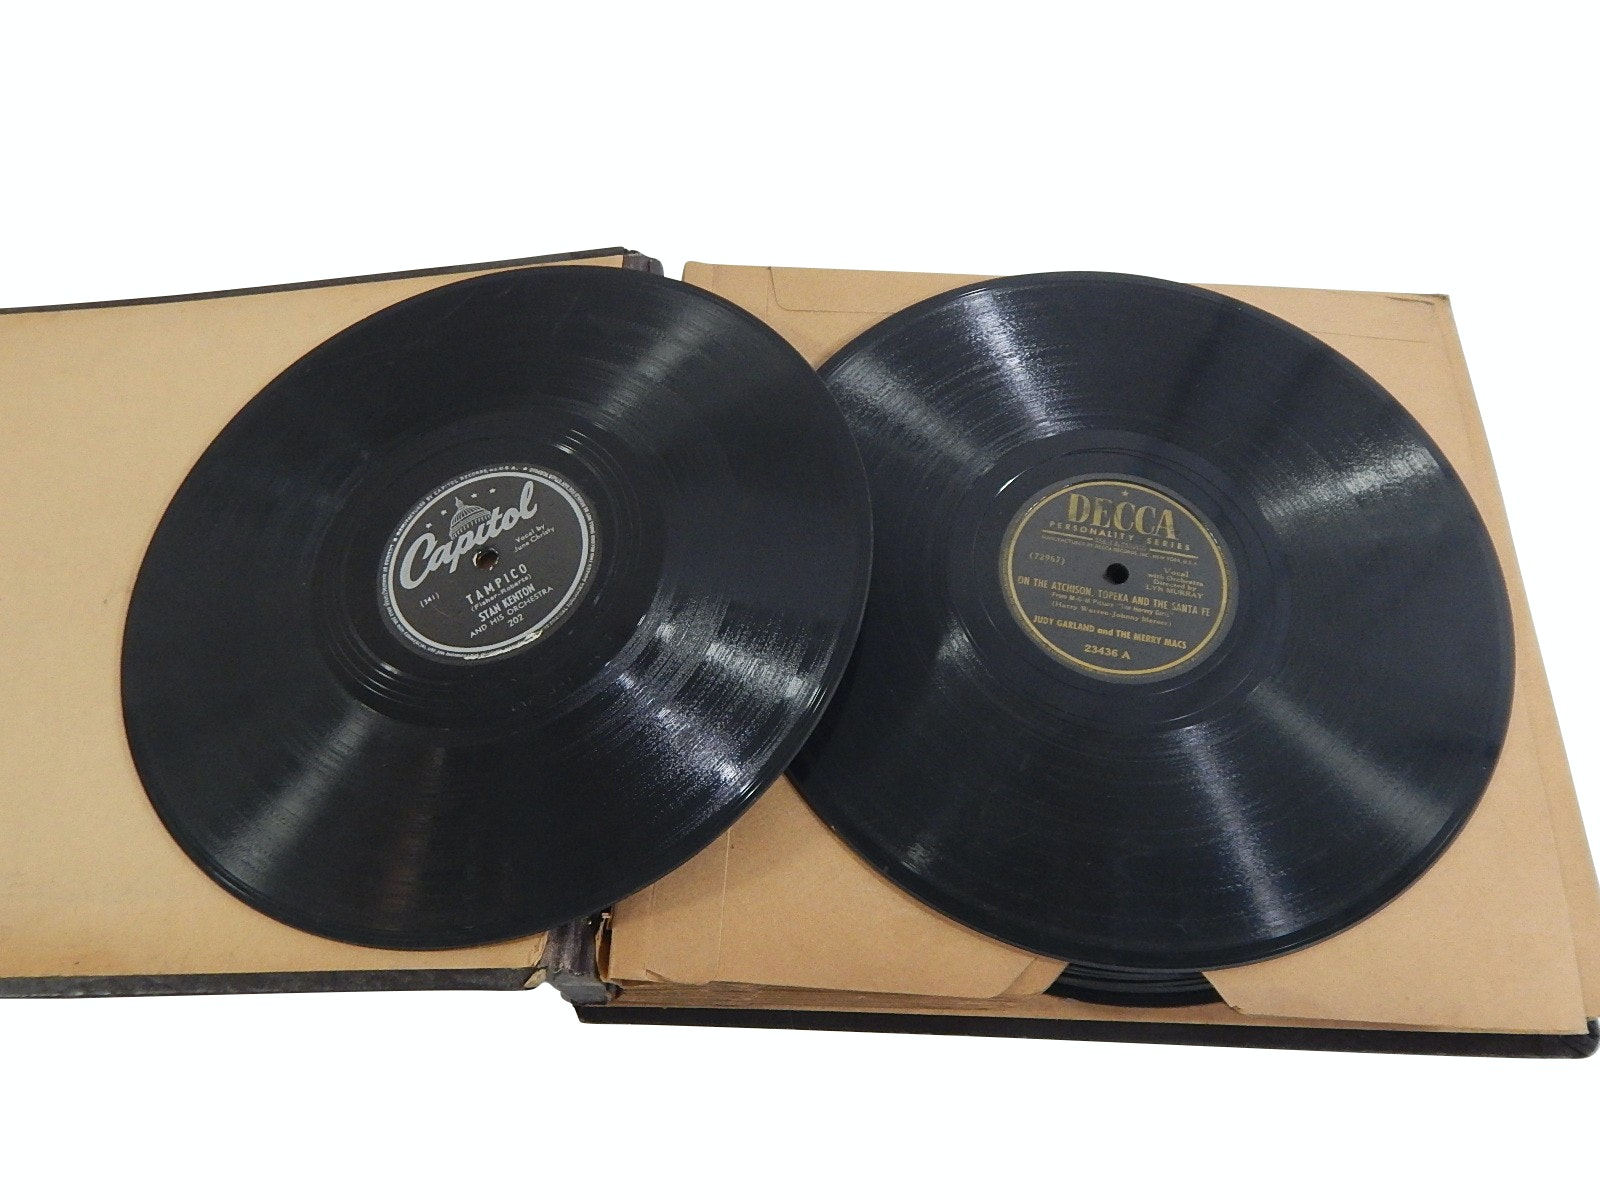 1930s/40s 78 RPM Jazz Records with Stan Kenton, Frank Sinatra, Judy Garland